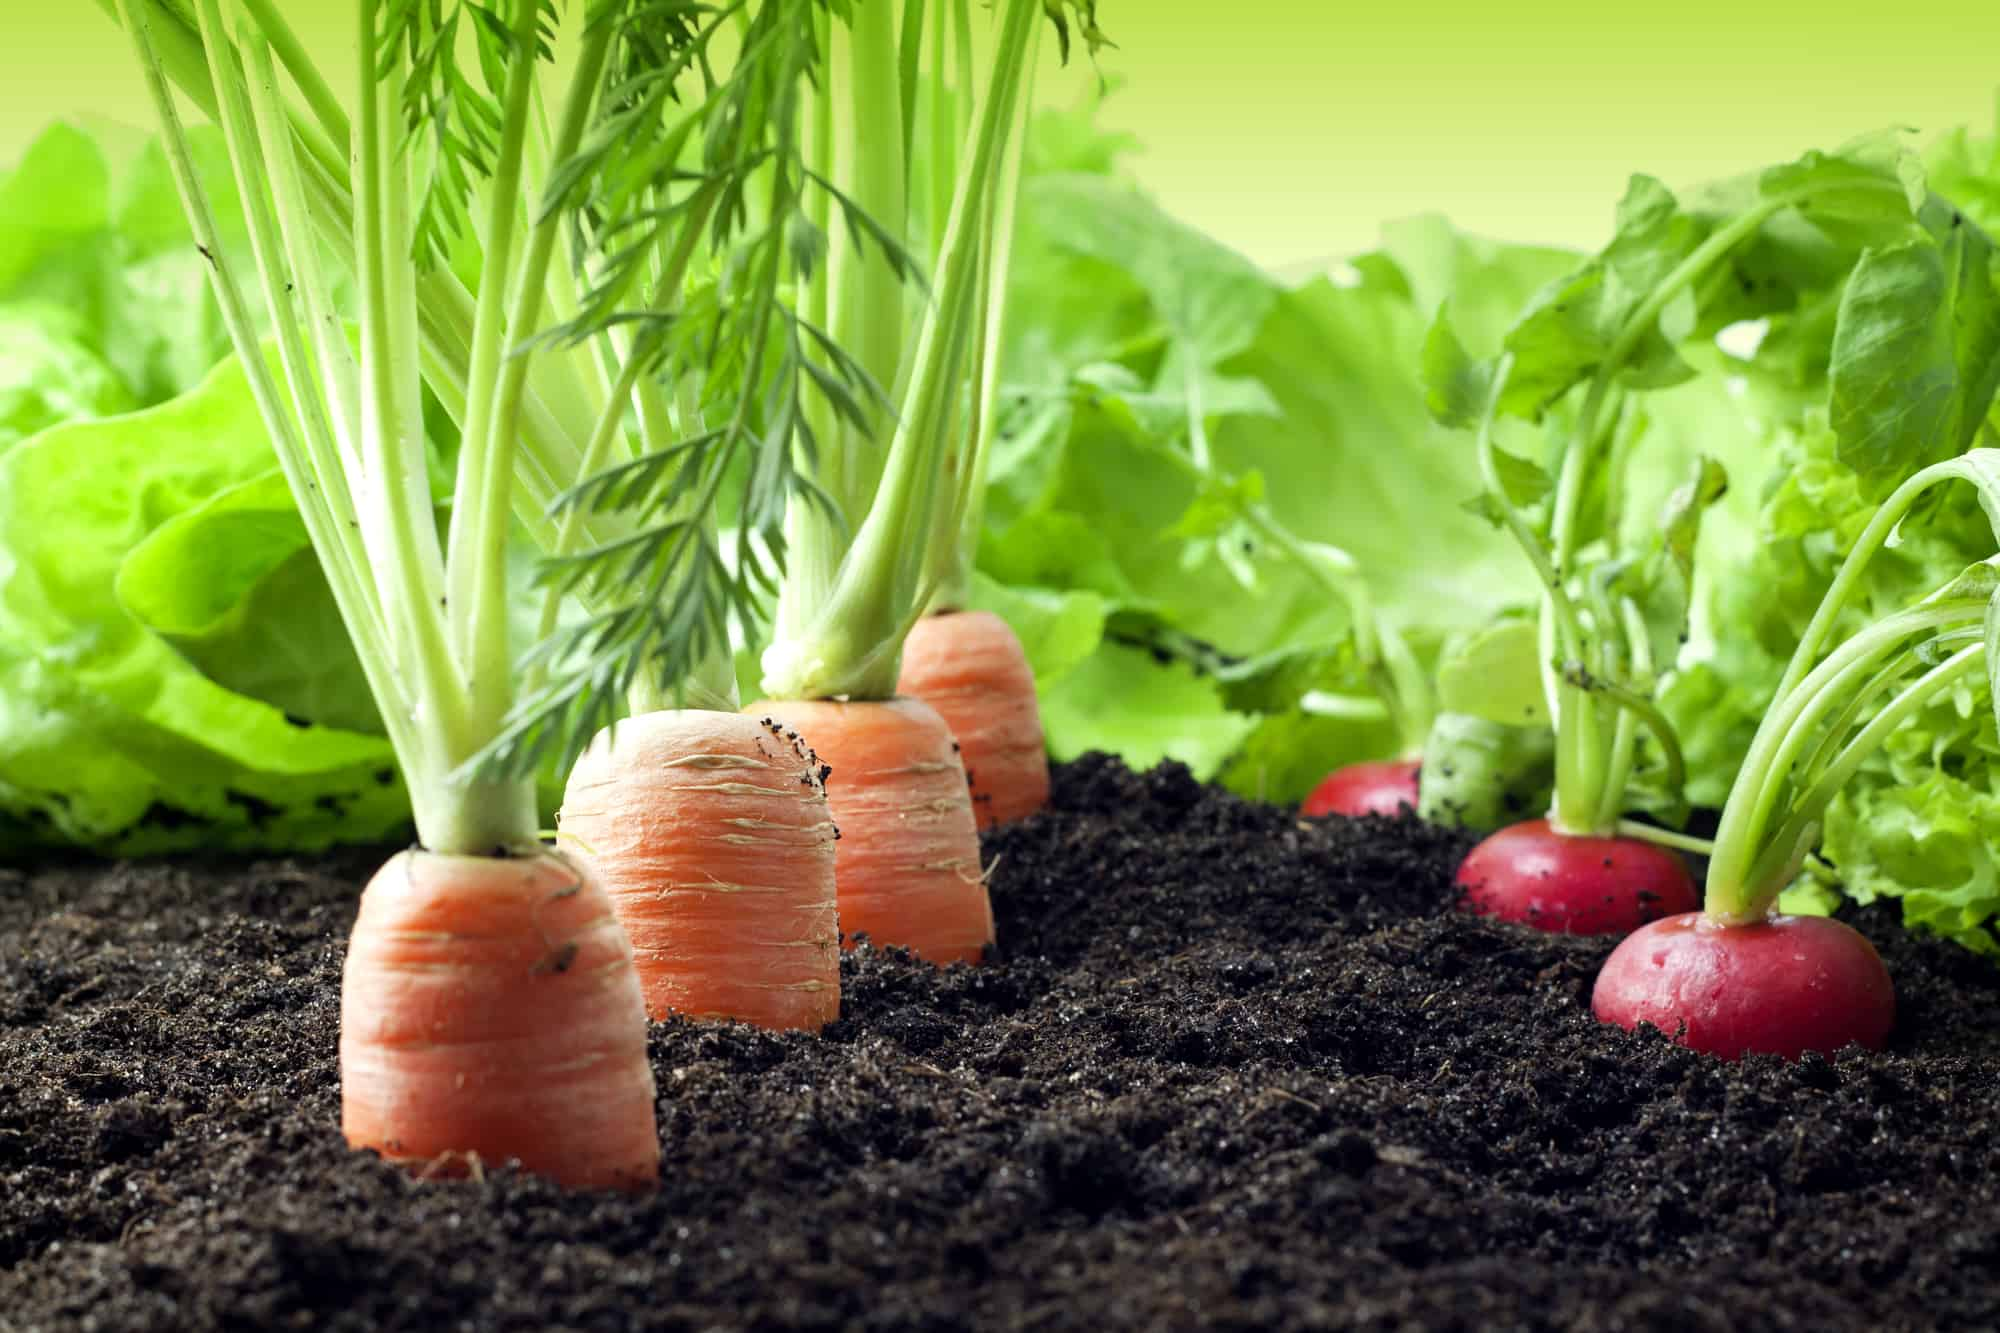 carrots & radishes in the soil